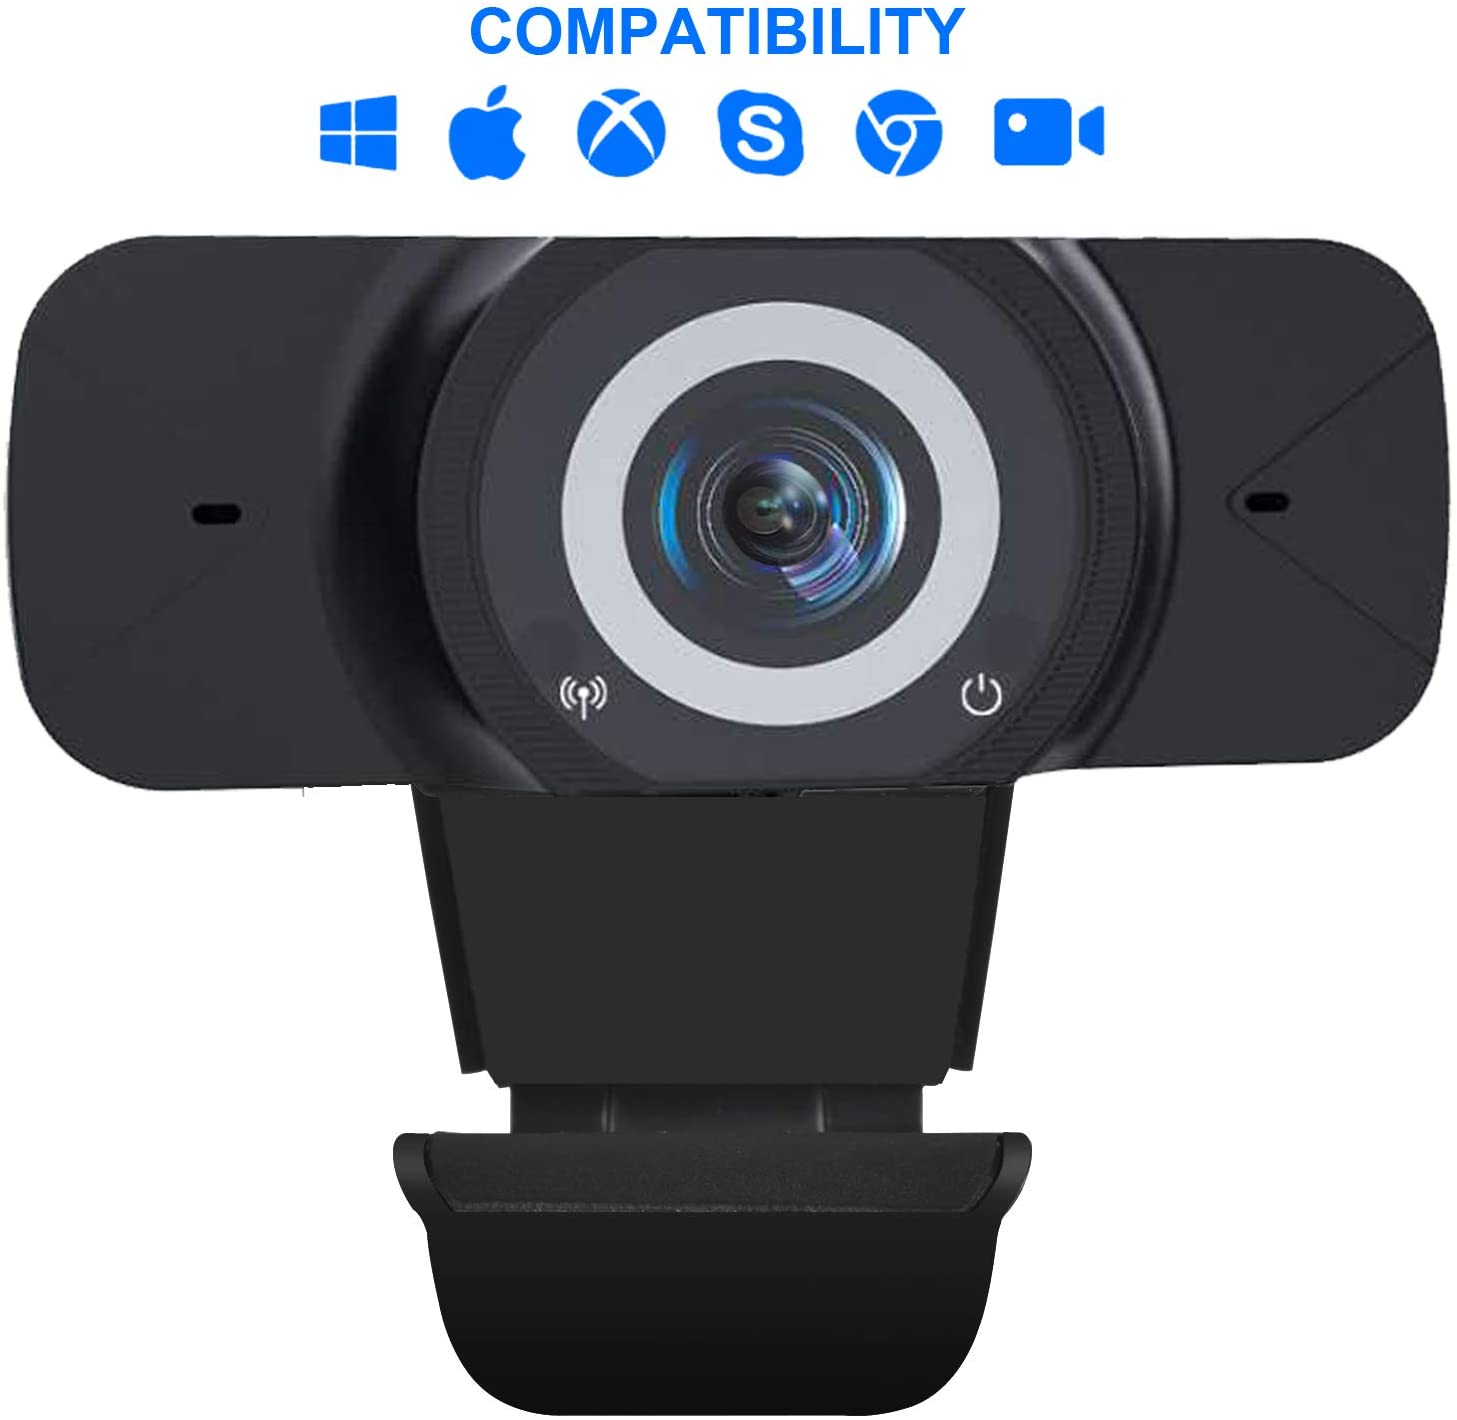 1080P Webcam, HD Webcam with Microphone Streaming Computer Web Camera -USB Computer Camera with Wide Angle Lens for PC Laptop Desktop Video Calling, Conferencing